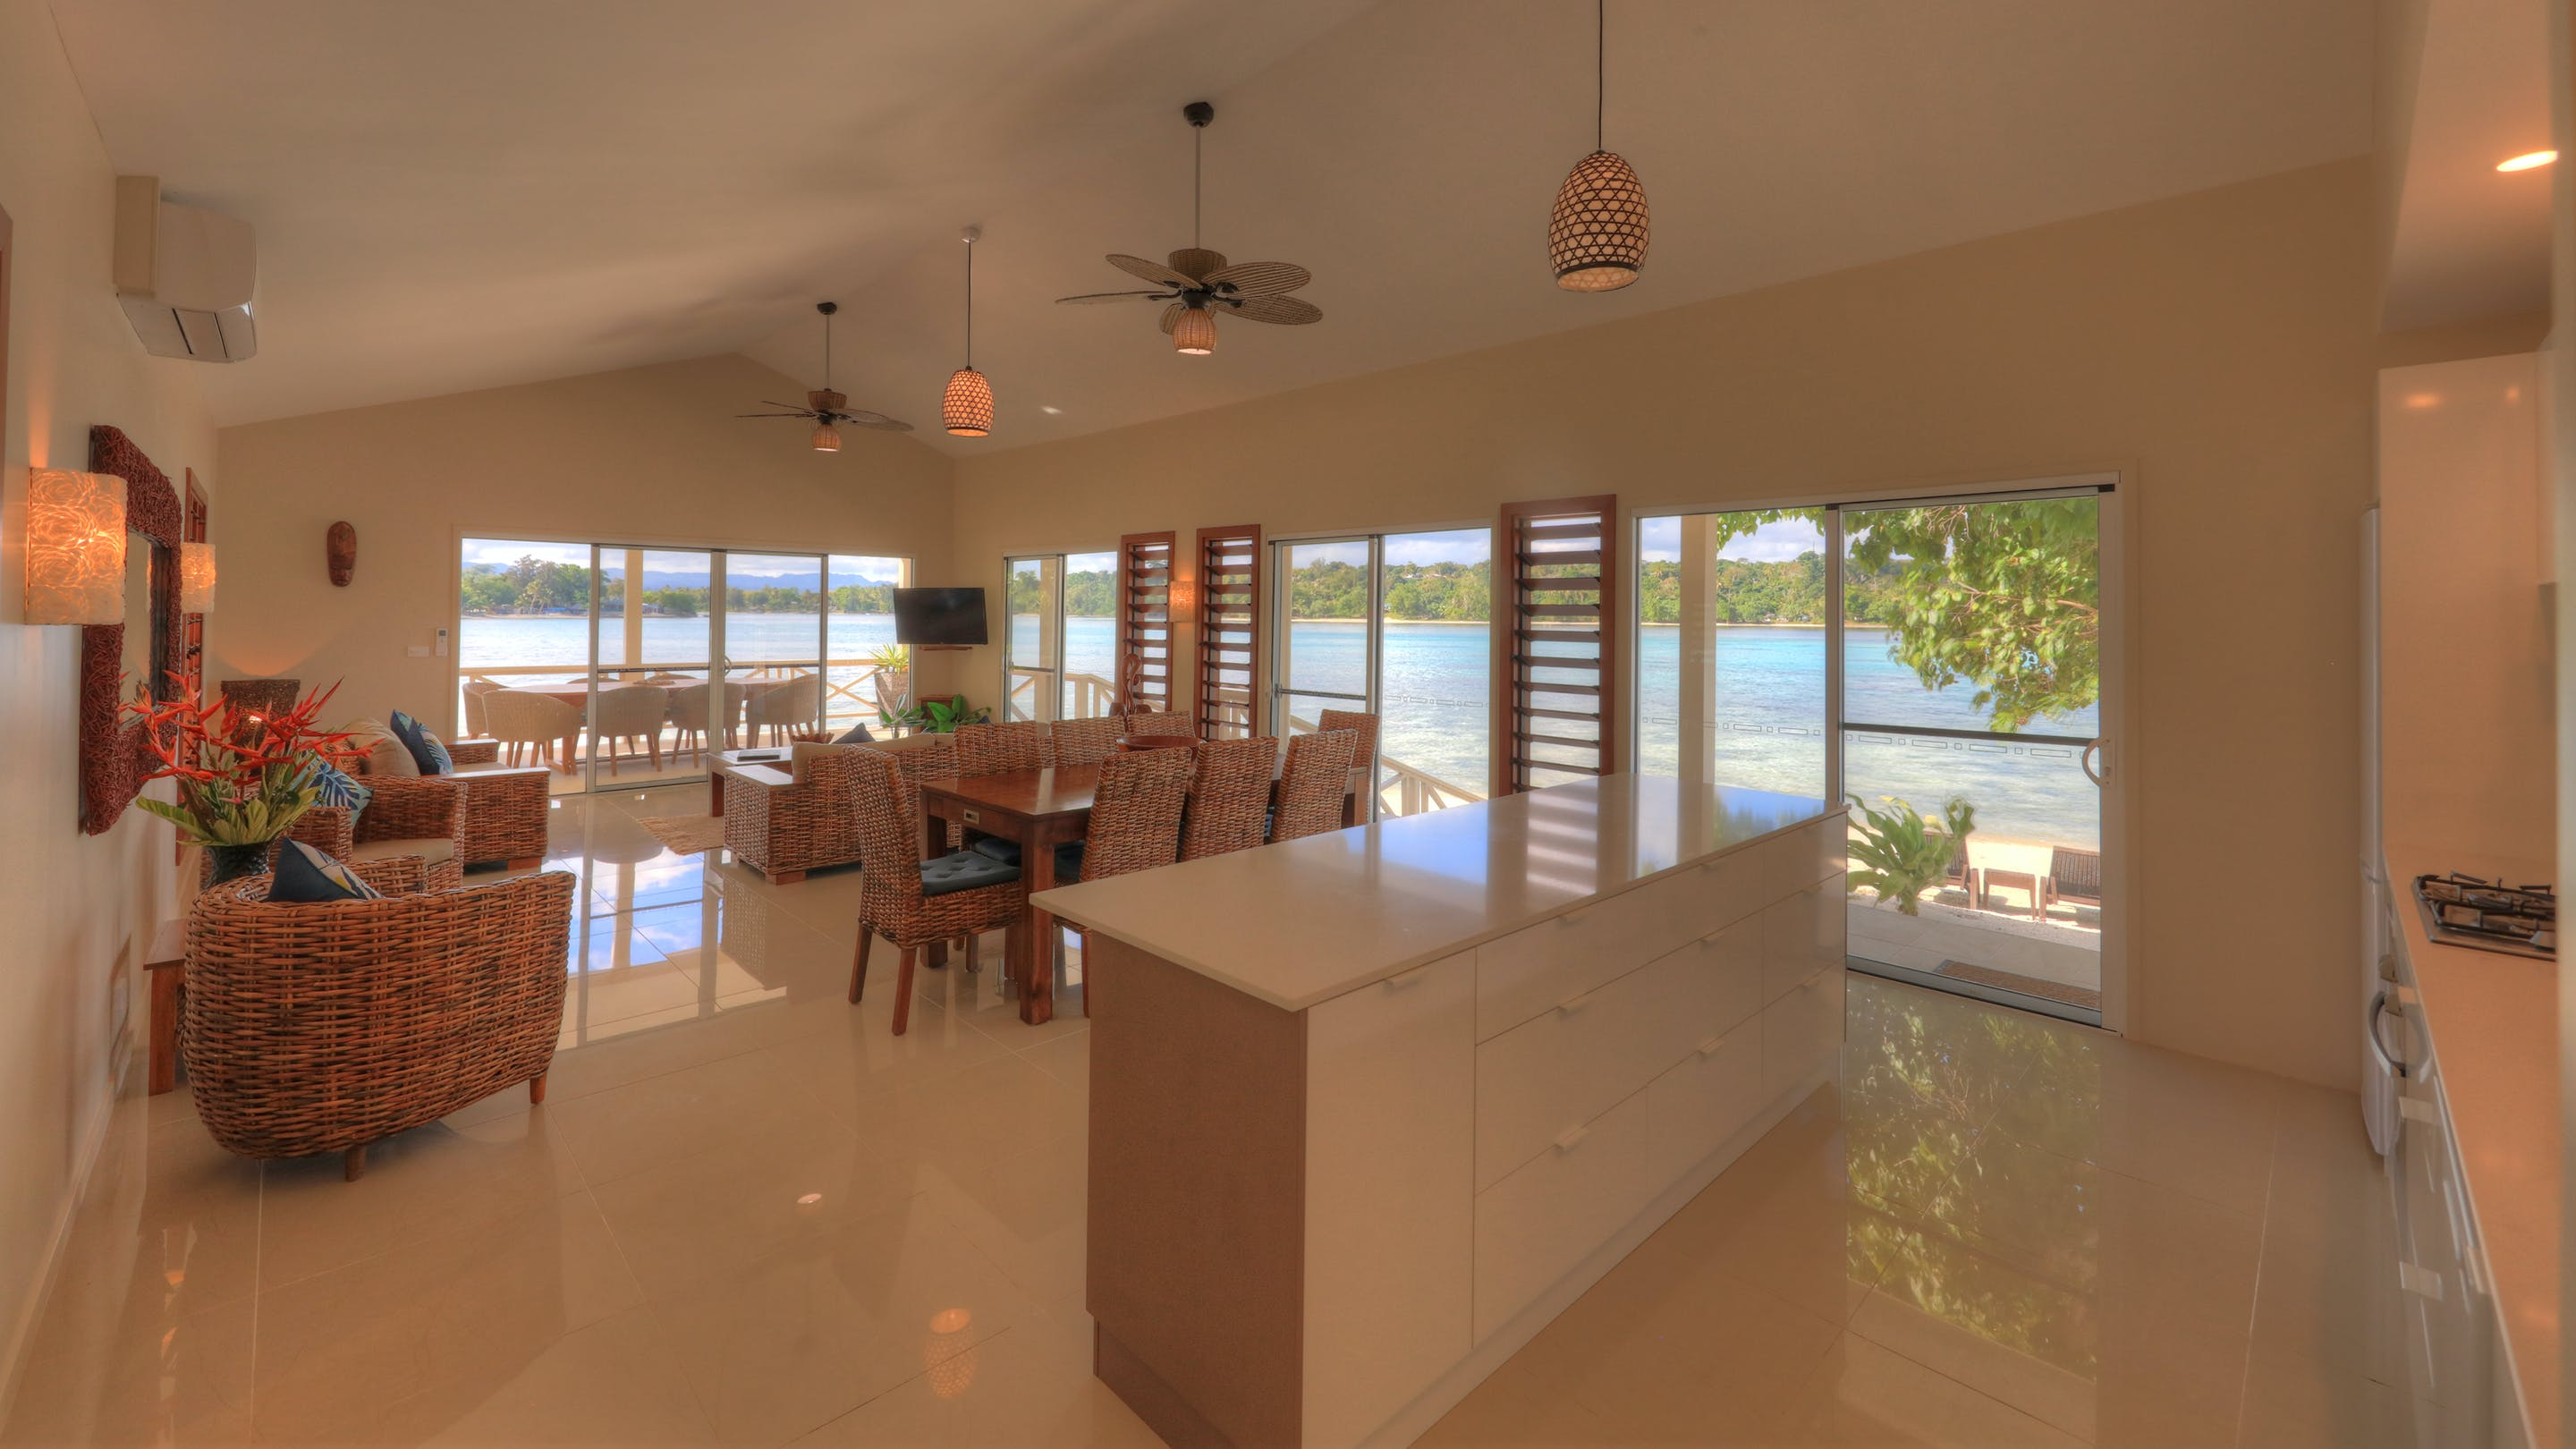 erakor island resort beach cottage kitchen #erakorislandresort #tropicalislandholiday #Vanuatuaccommodation